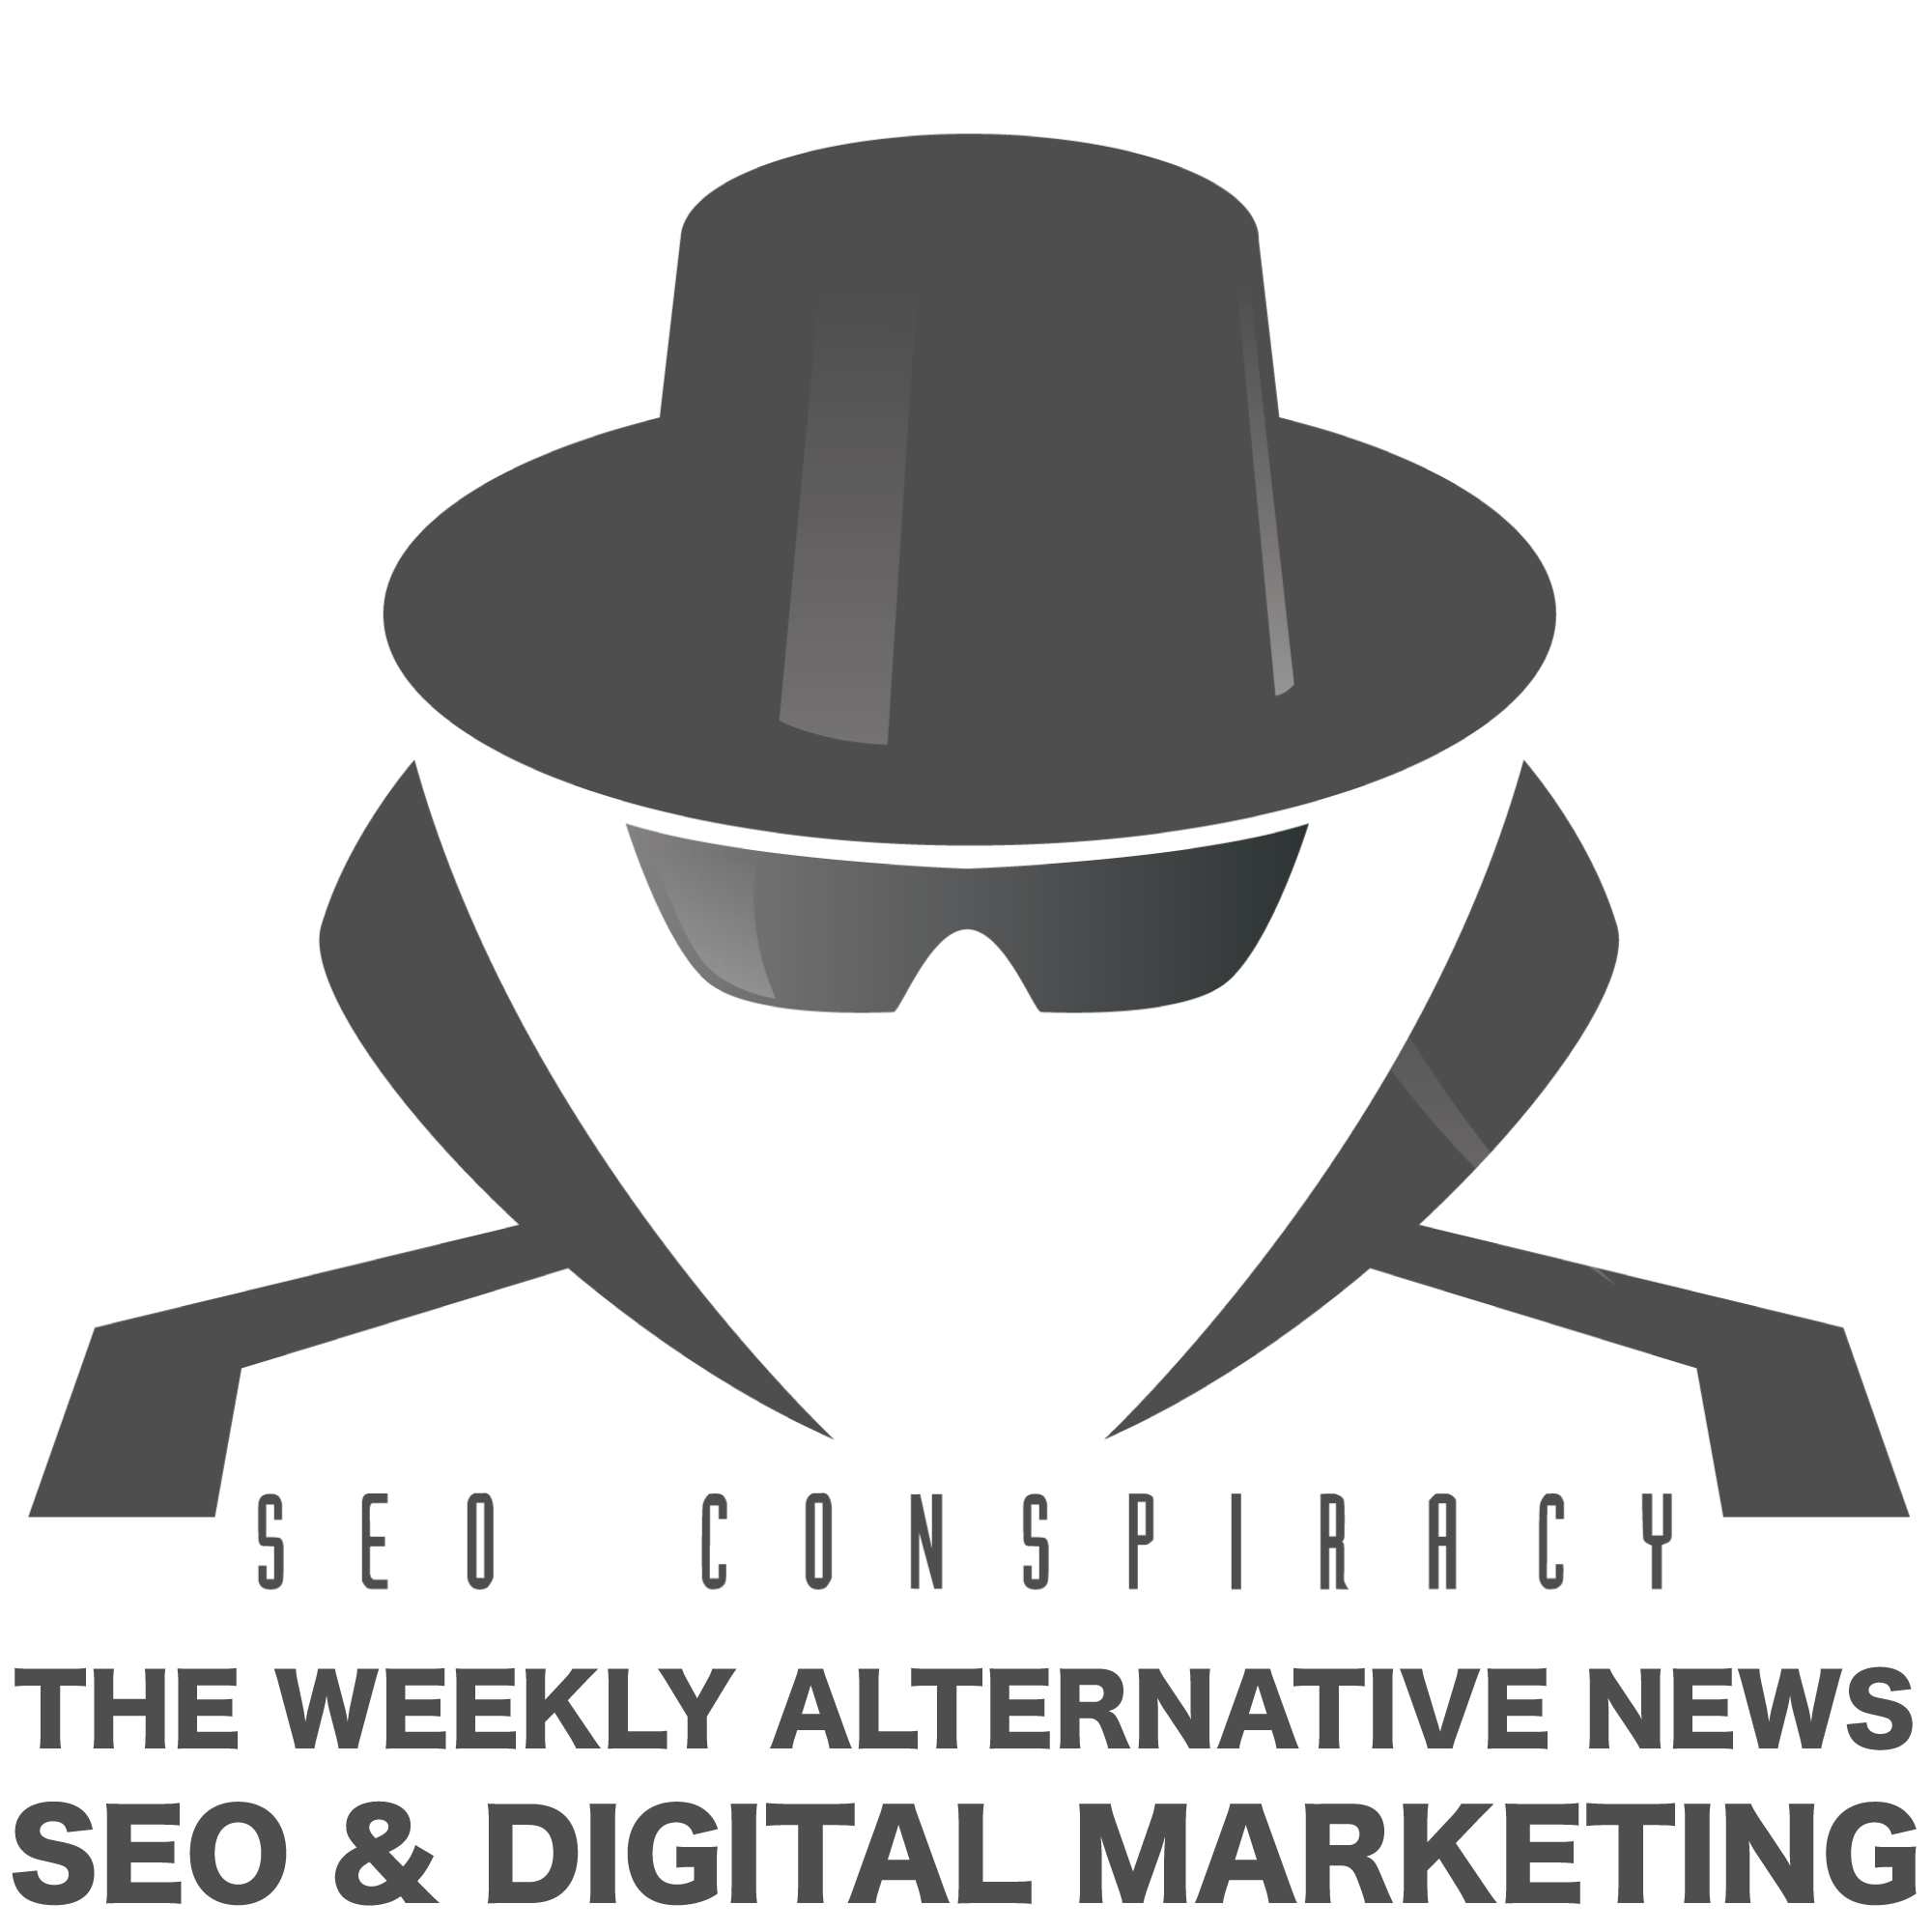 The Future of Google and what it means for Search Engine Optimization